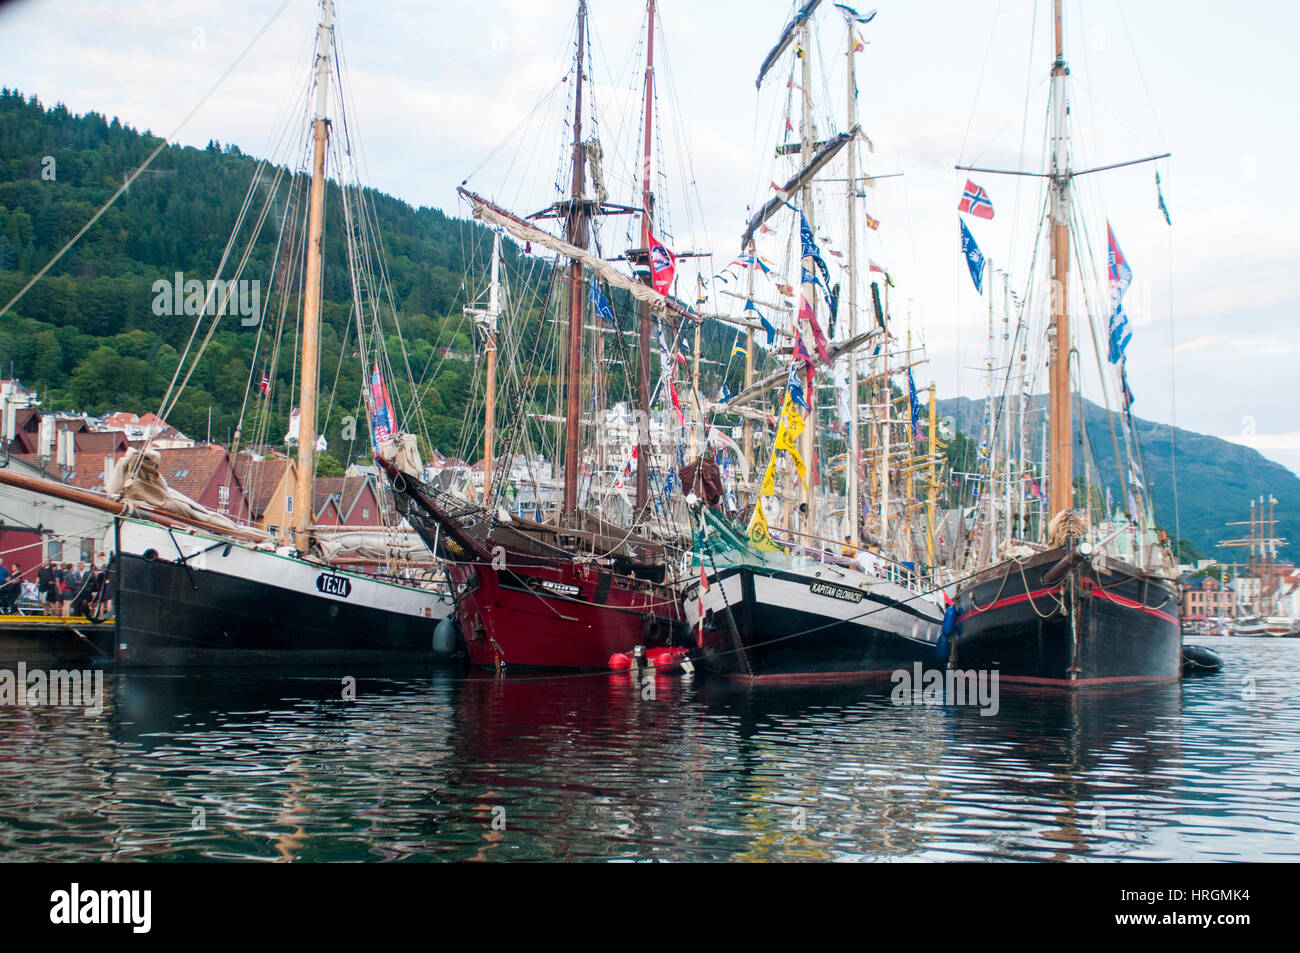 Tall Ship Races at Bryggen, Bergen Norway. - Stock Image